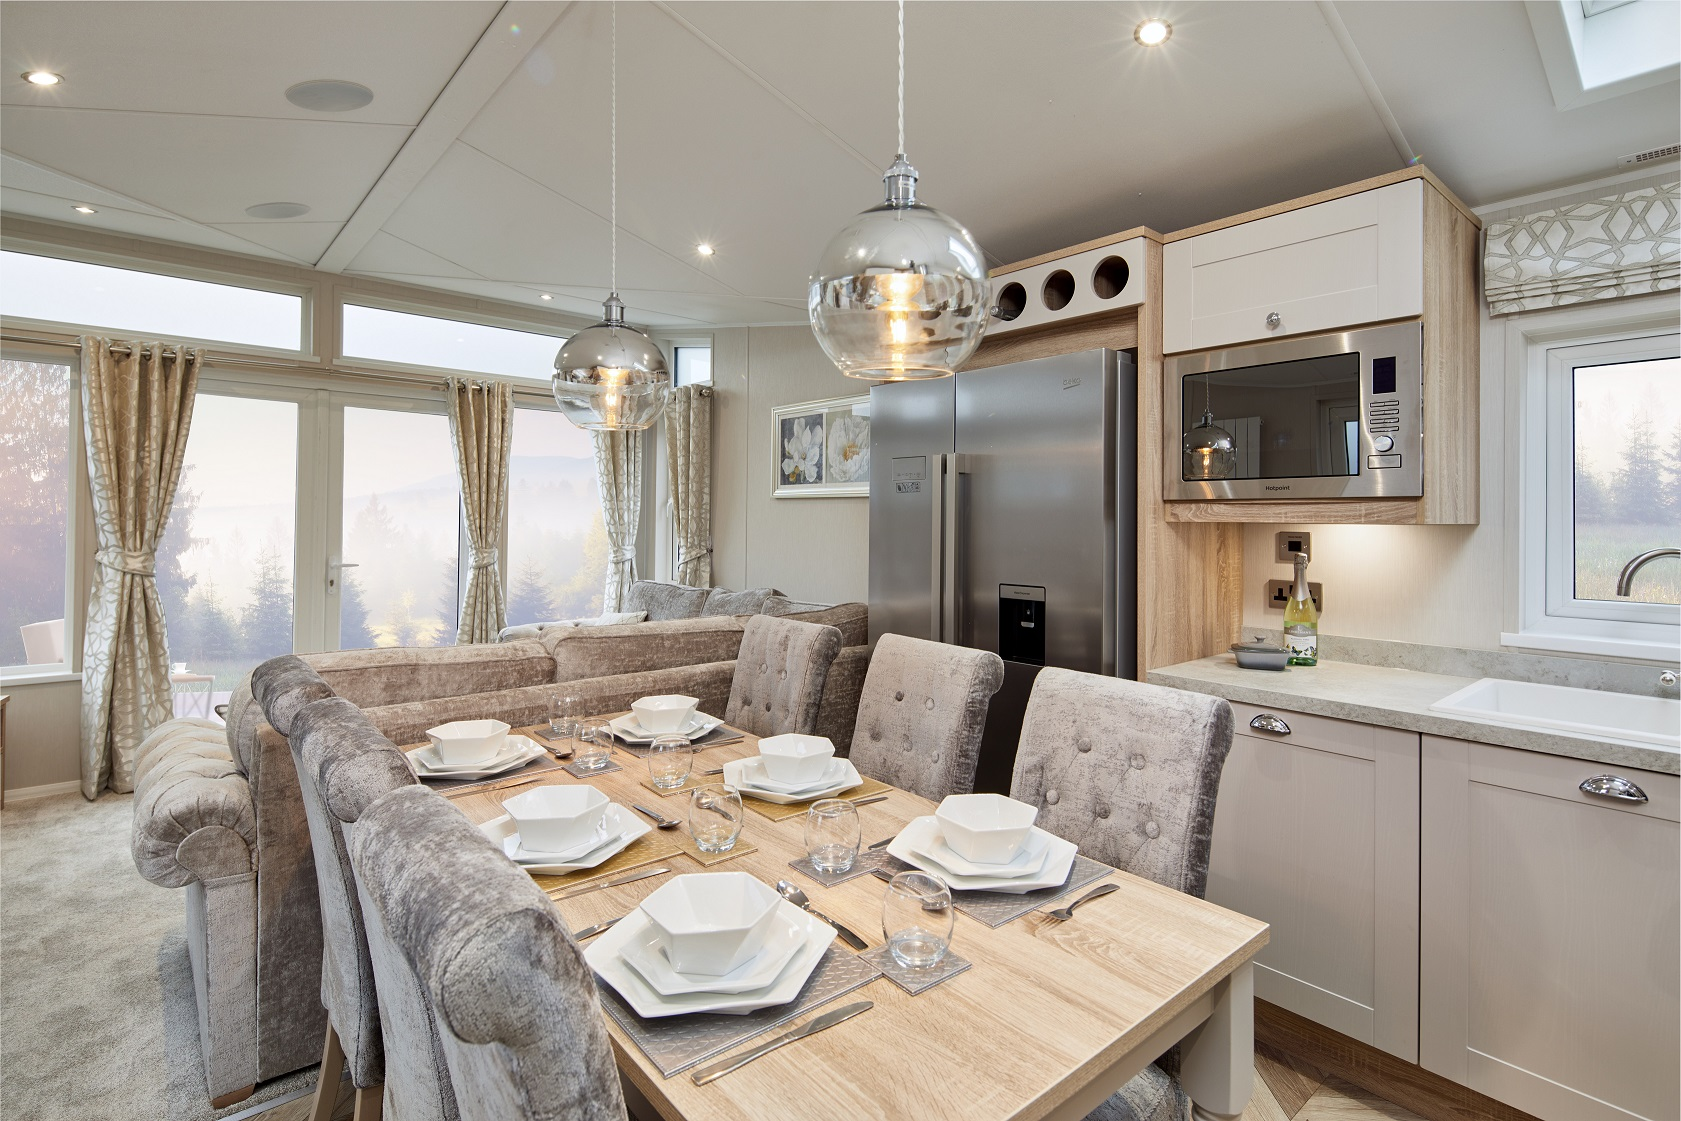 Willerby Vogue Classique - 13 foot - 2 Bedrooms: New Static Caravans and Holiday Homes for Sale, Available to Order Large Image 1